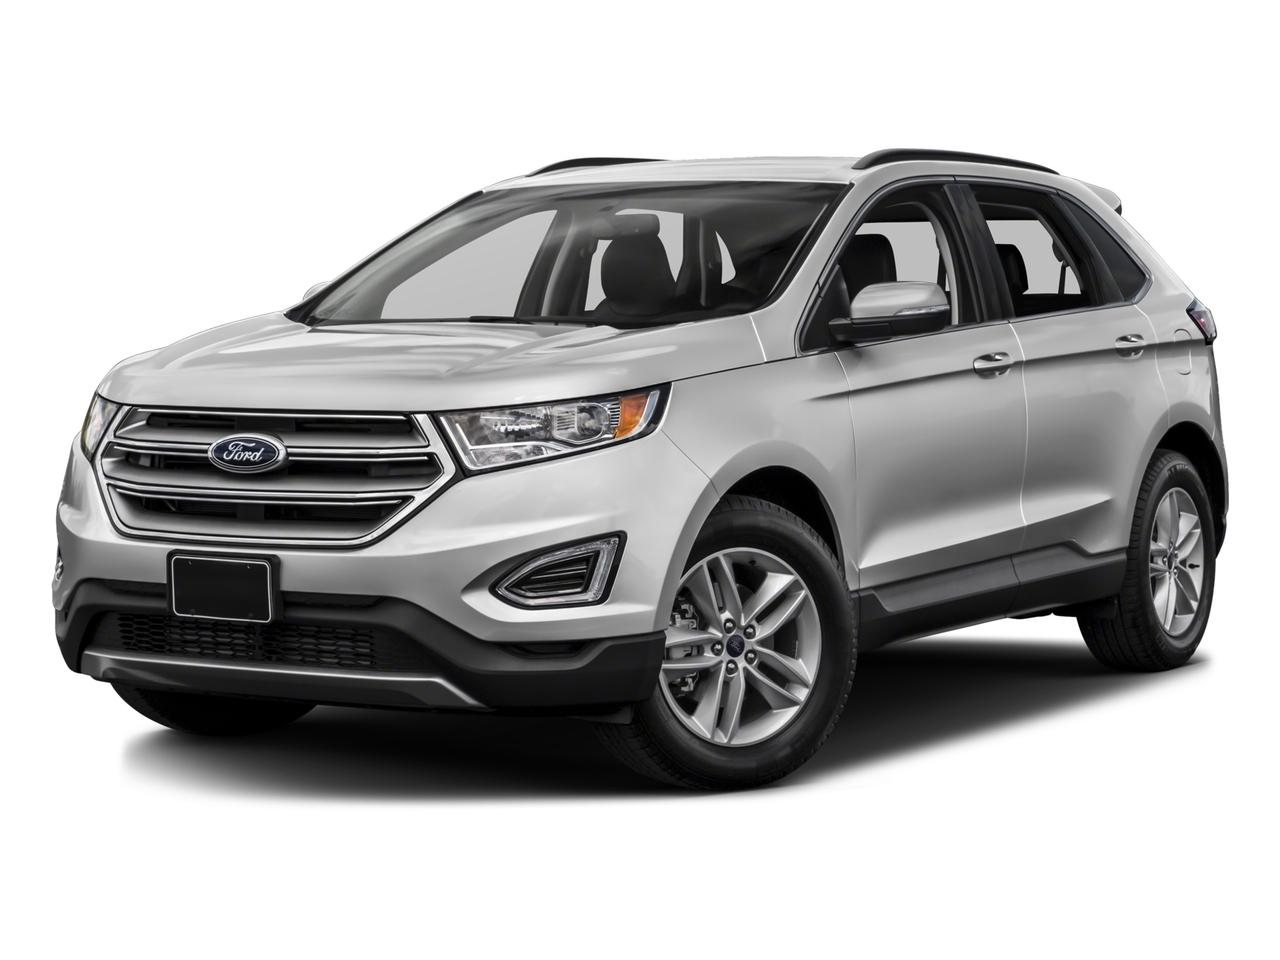 2016 Ford Edge Vehicle Photo in Boyertown, PA 19512